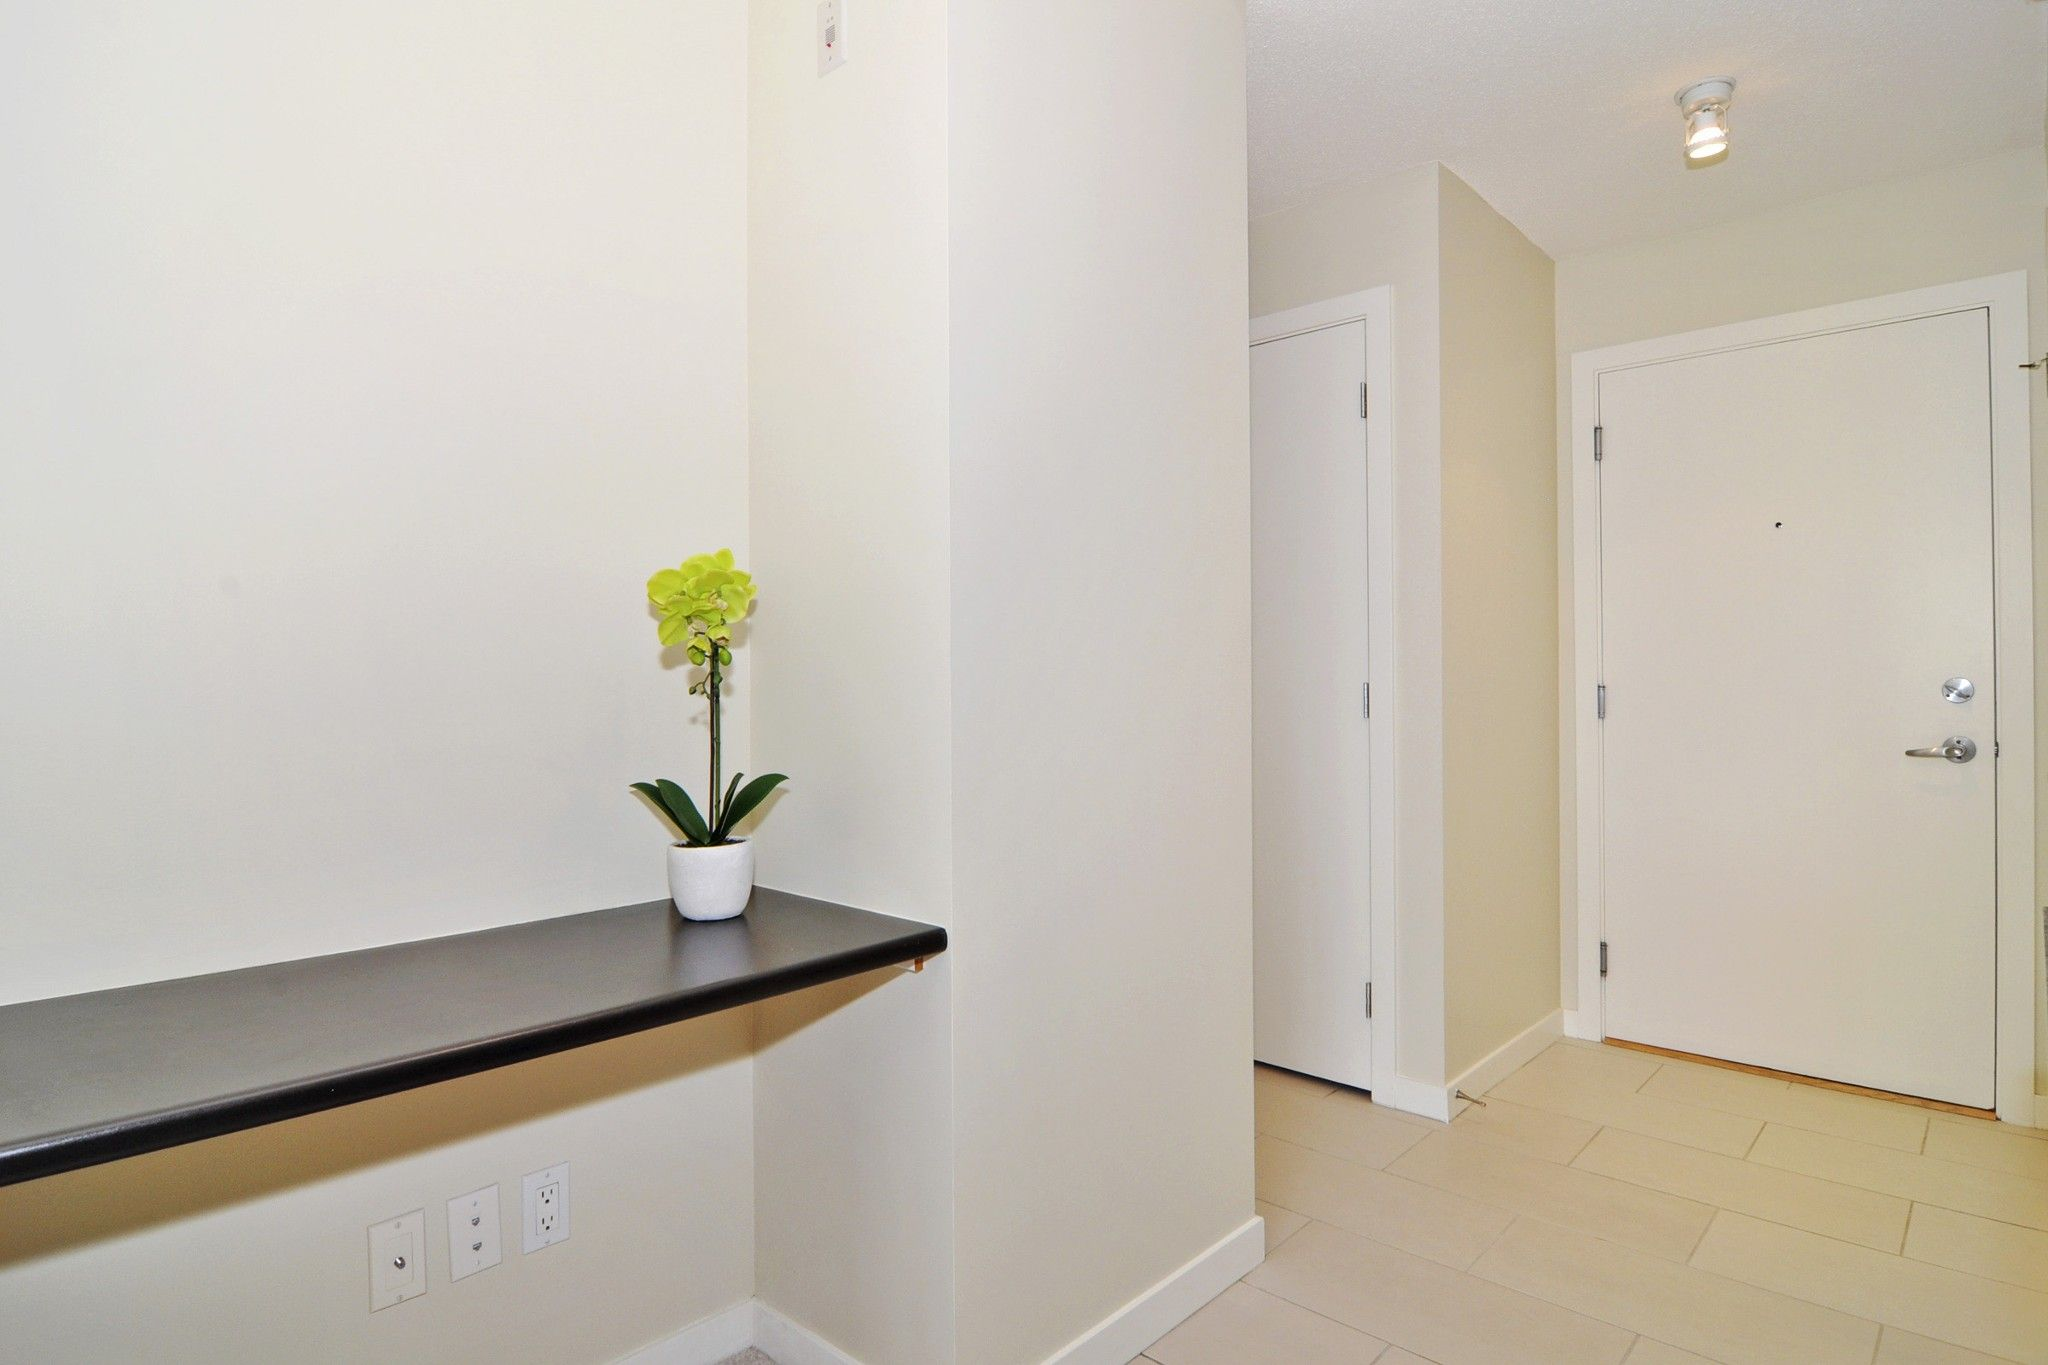 """Photo 8: Photos: 312 7138 COLLIER Street in Burnaby: Highgate Condo for sale in """"STANDFORD HOUSE"""" (Burnaby South)  : MLS®# R2224760"""